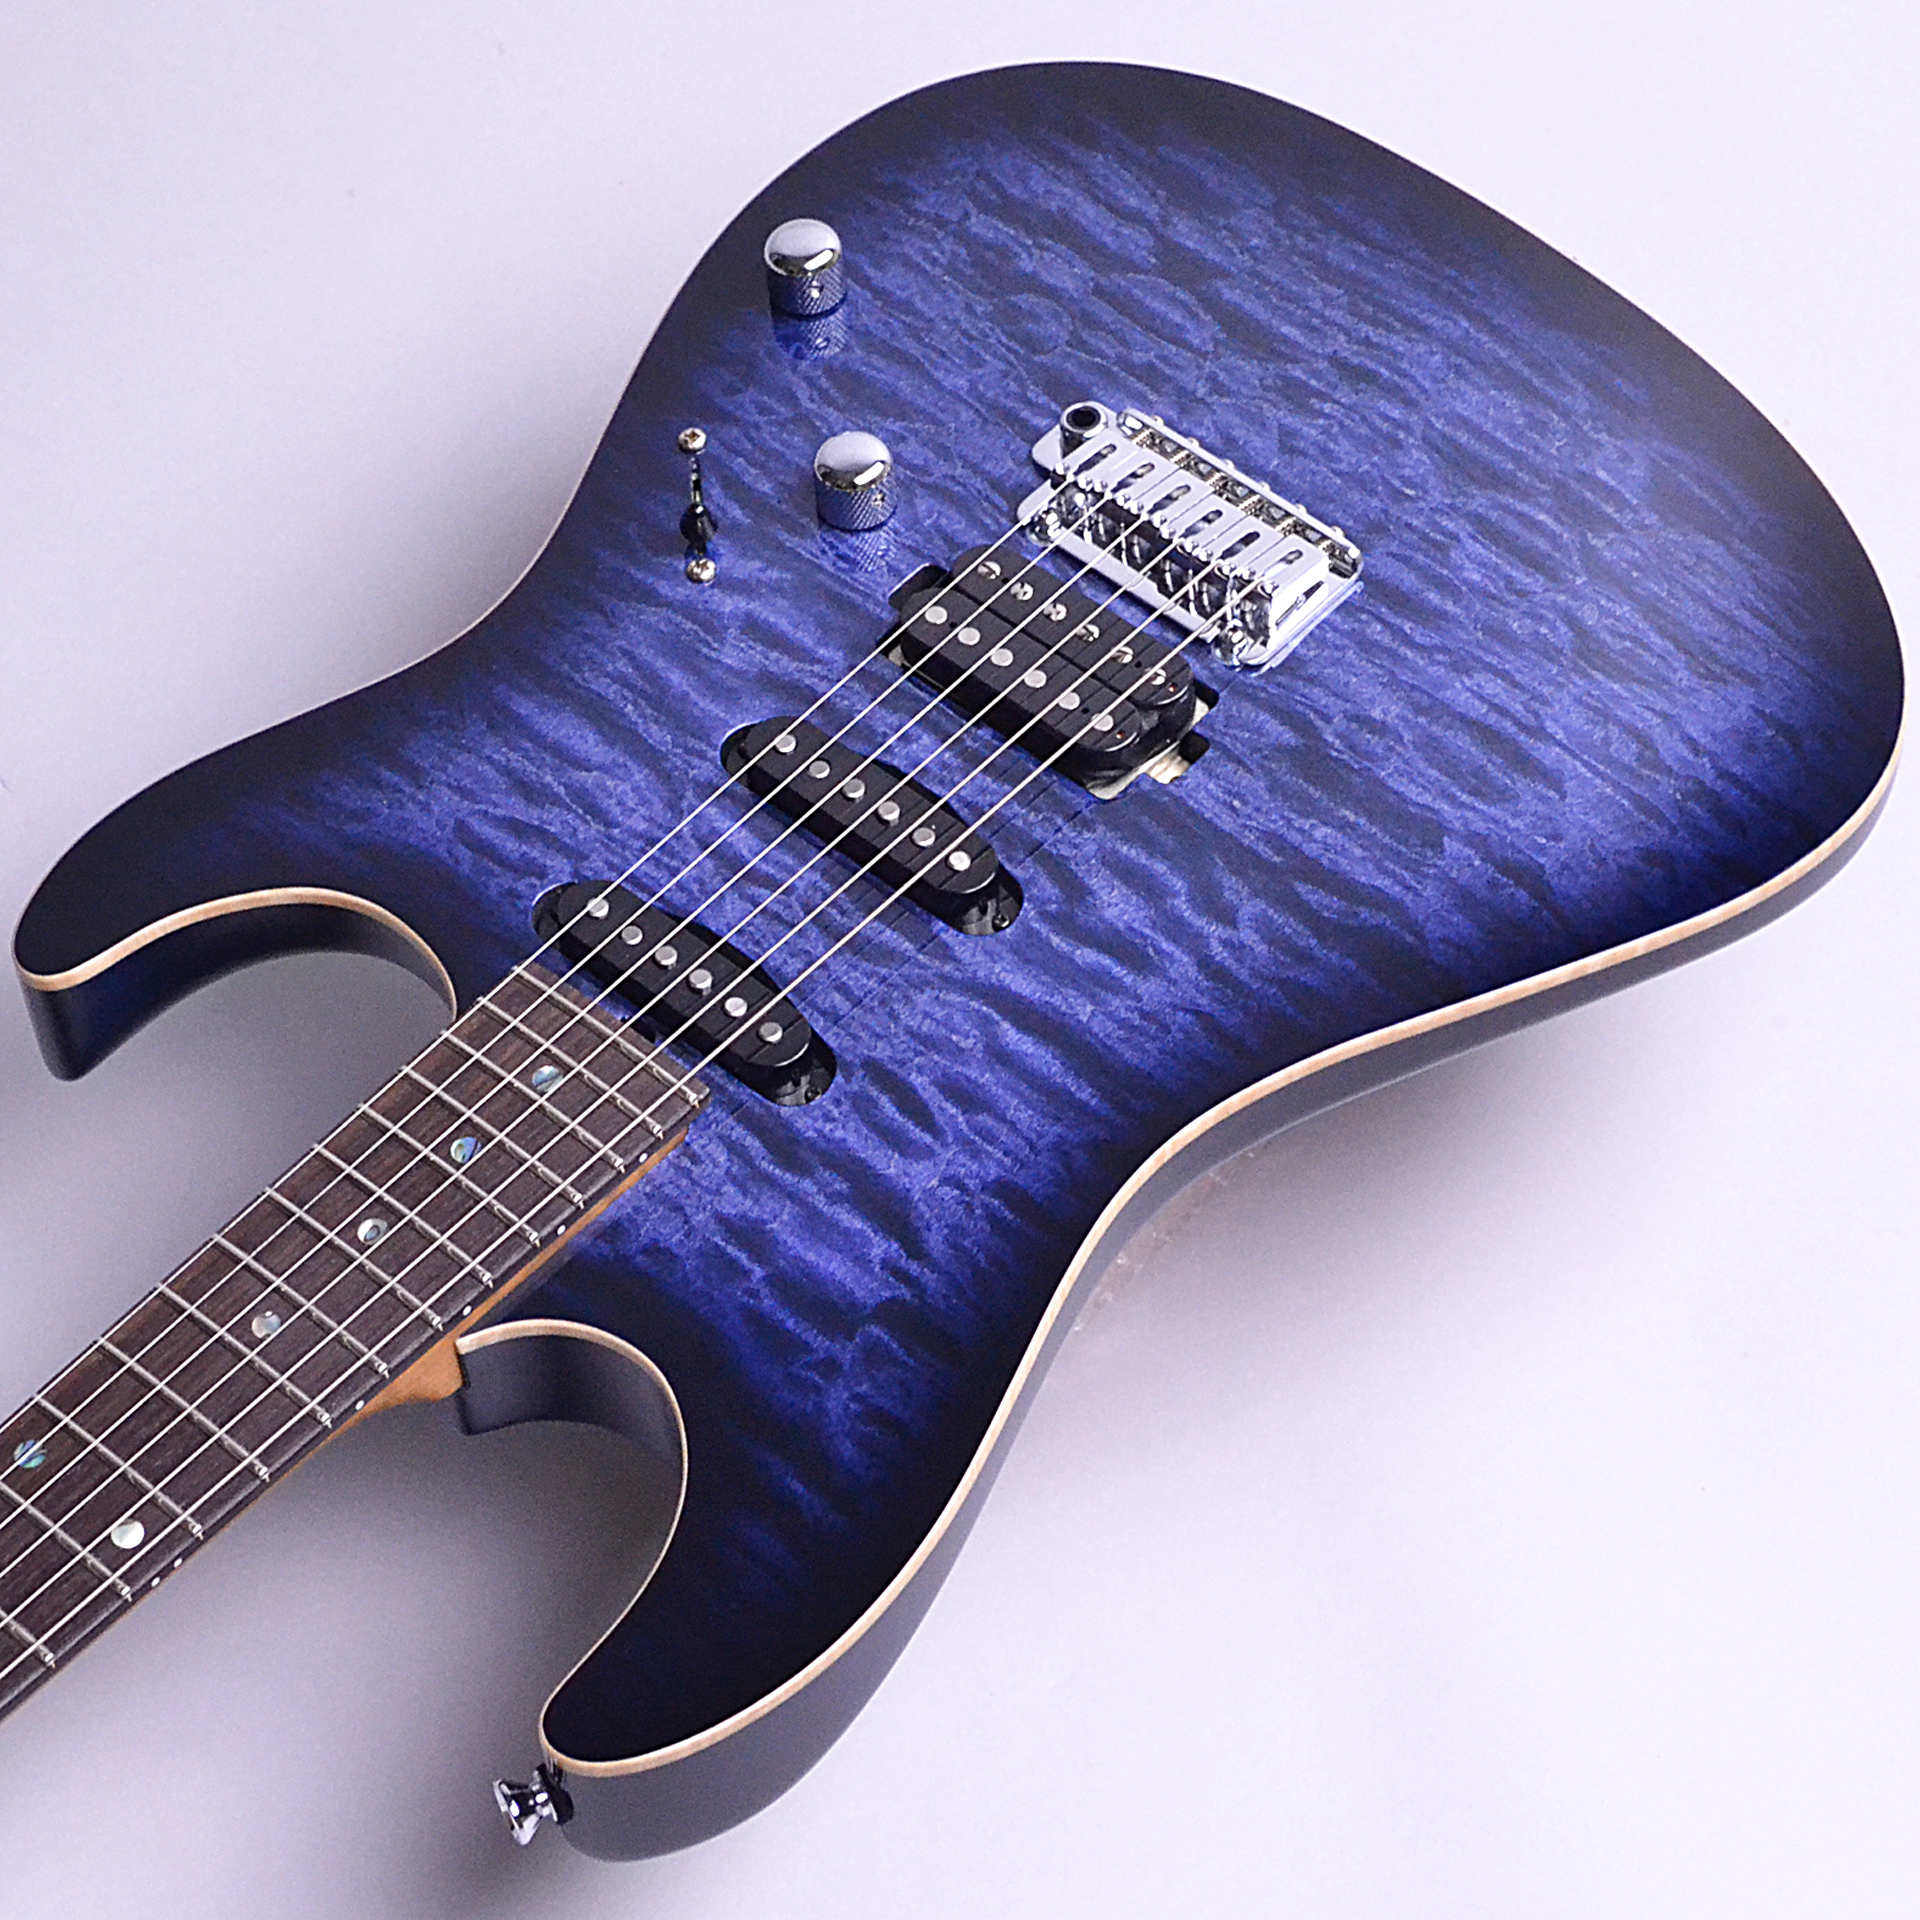 DST-22 Quilt Roasted Flame Maple Neckのヘッド画像